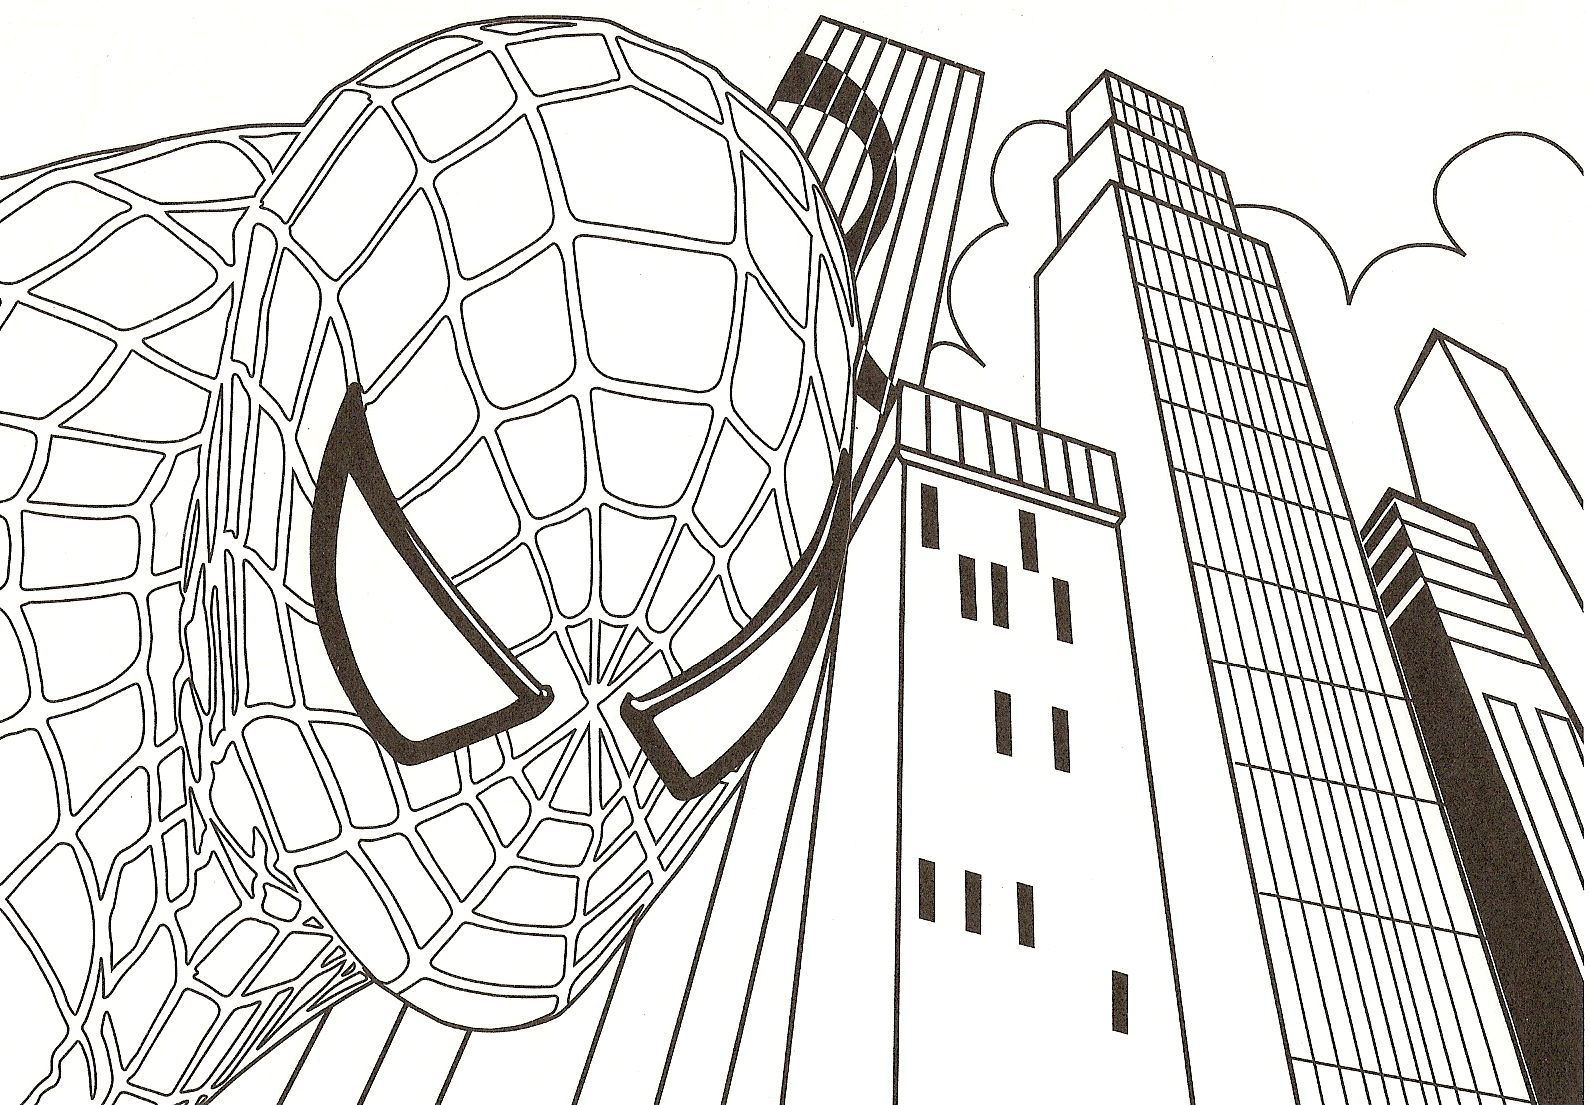 Spiderman for kids - Spiderman Kids Coloring Pages